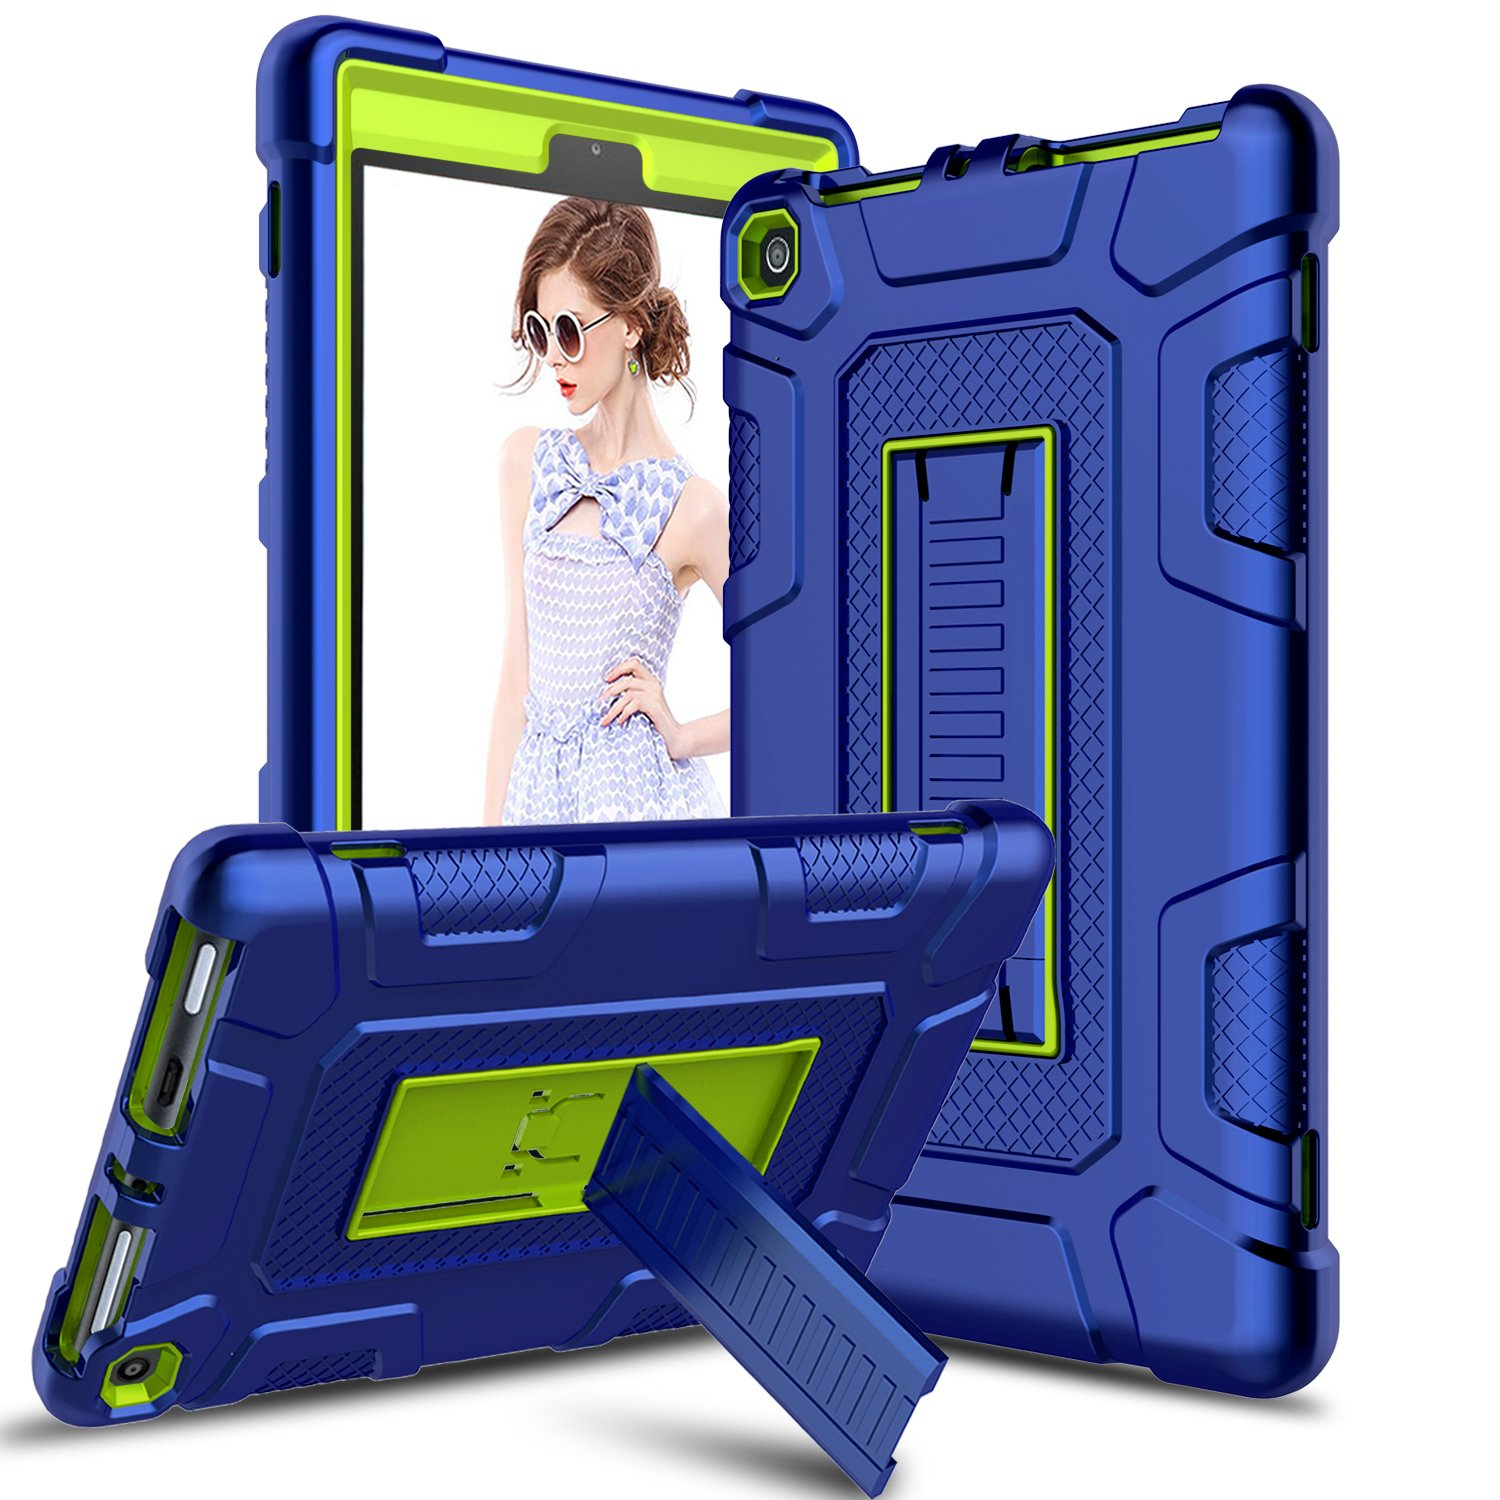 Liwarace Case for All-New Amazon Fire 8 2018 Tablet, Fire 8 2017 Tablet, Three-Layers Shockproof Anti-Slip Protective Case Cover with Kickstand for Amazon Kindle Fire 8 (Yellow)